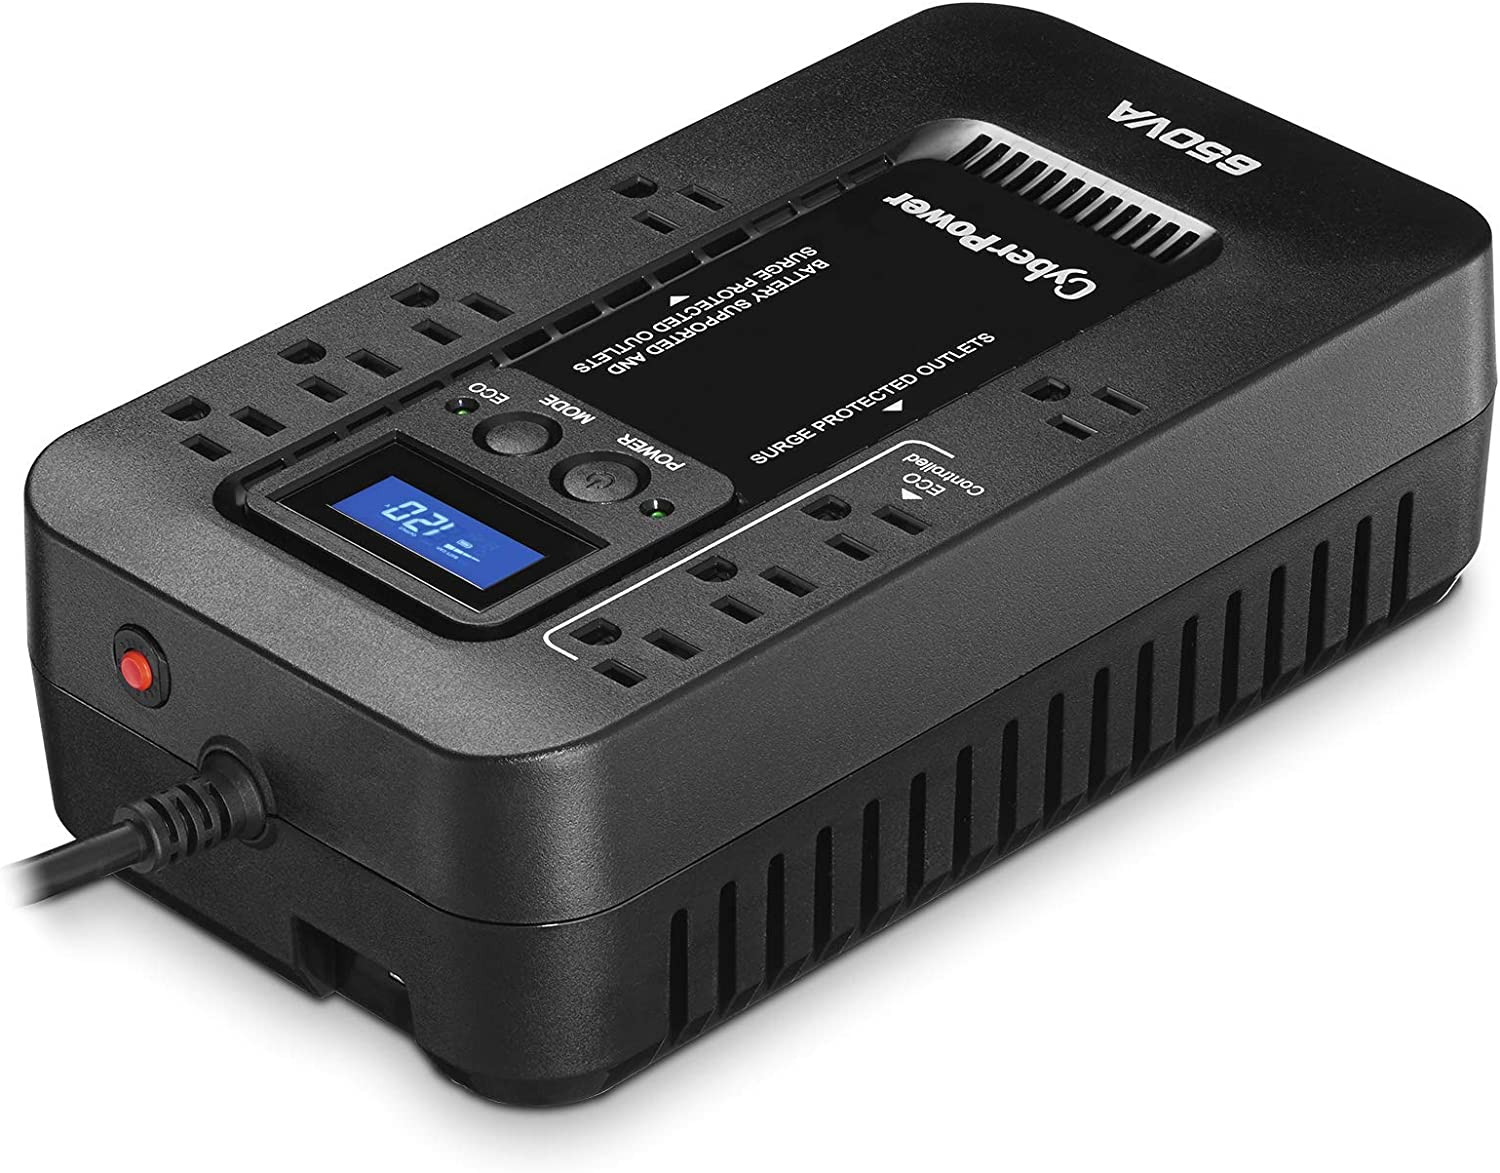 650VA//390W ECO Mode Compact 8 Outlets CyberPower EC650LCD Ecologic UPS System